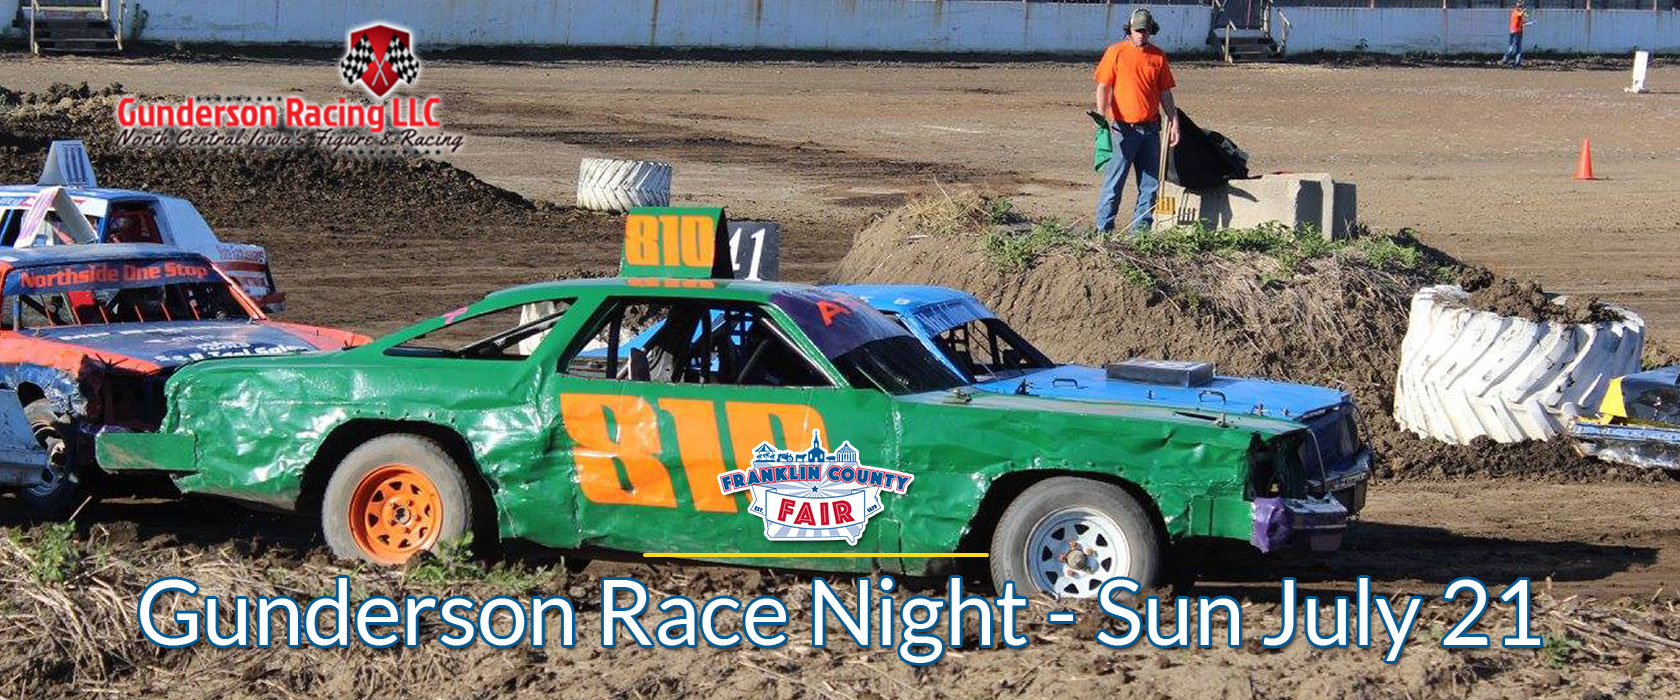 Franklin County Fair Race Night! - Sunday July 21